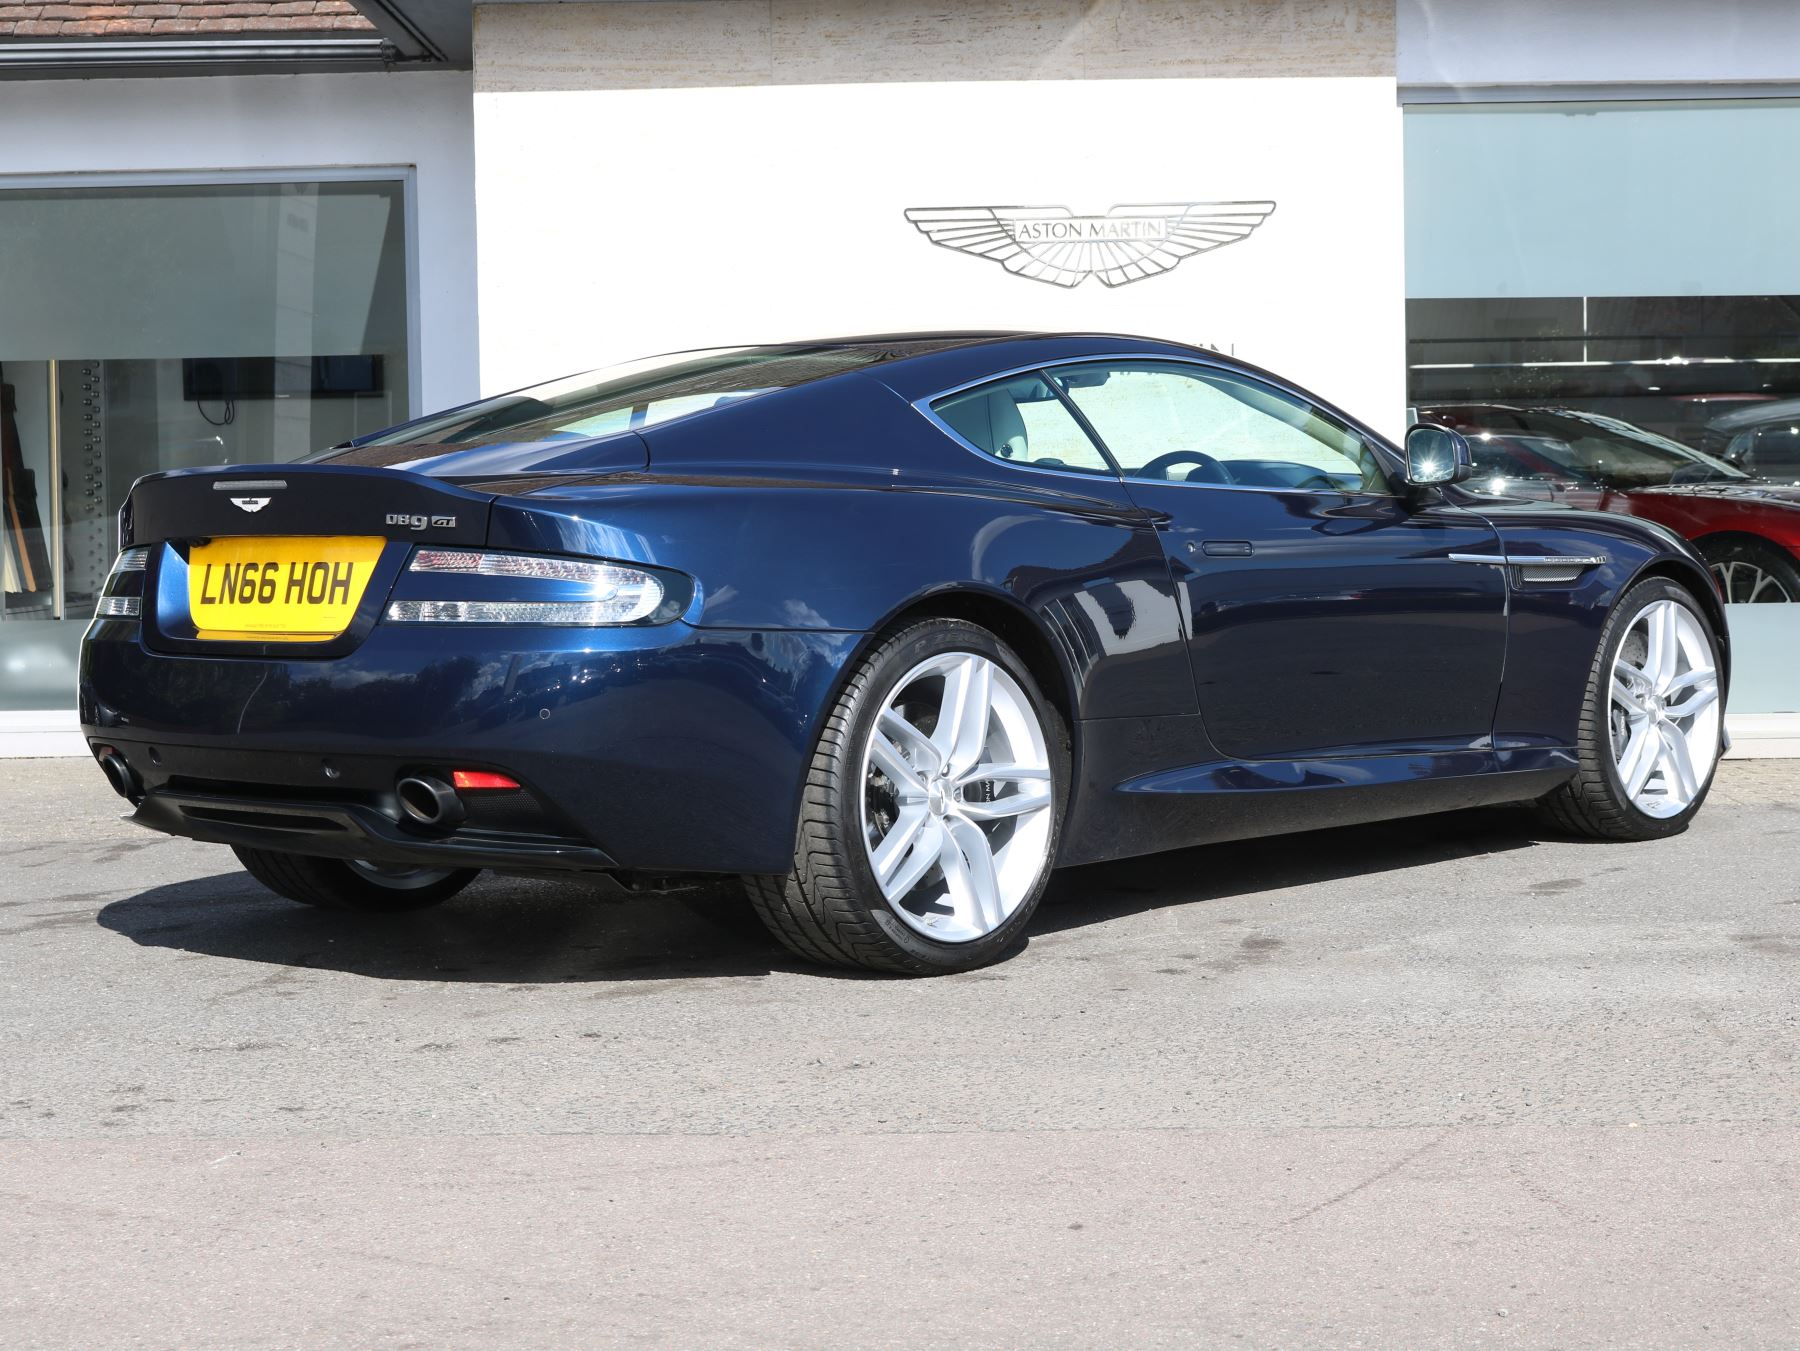 Aston Martin DB V GT Dr Touchtronic Automatic Coupe - Aston martin gt